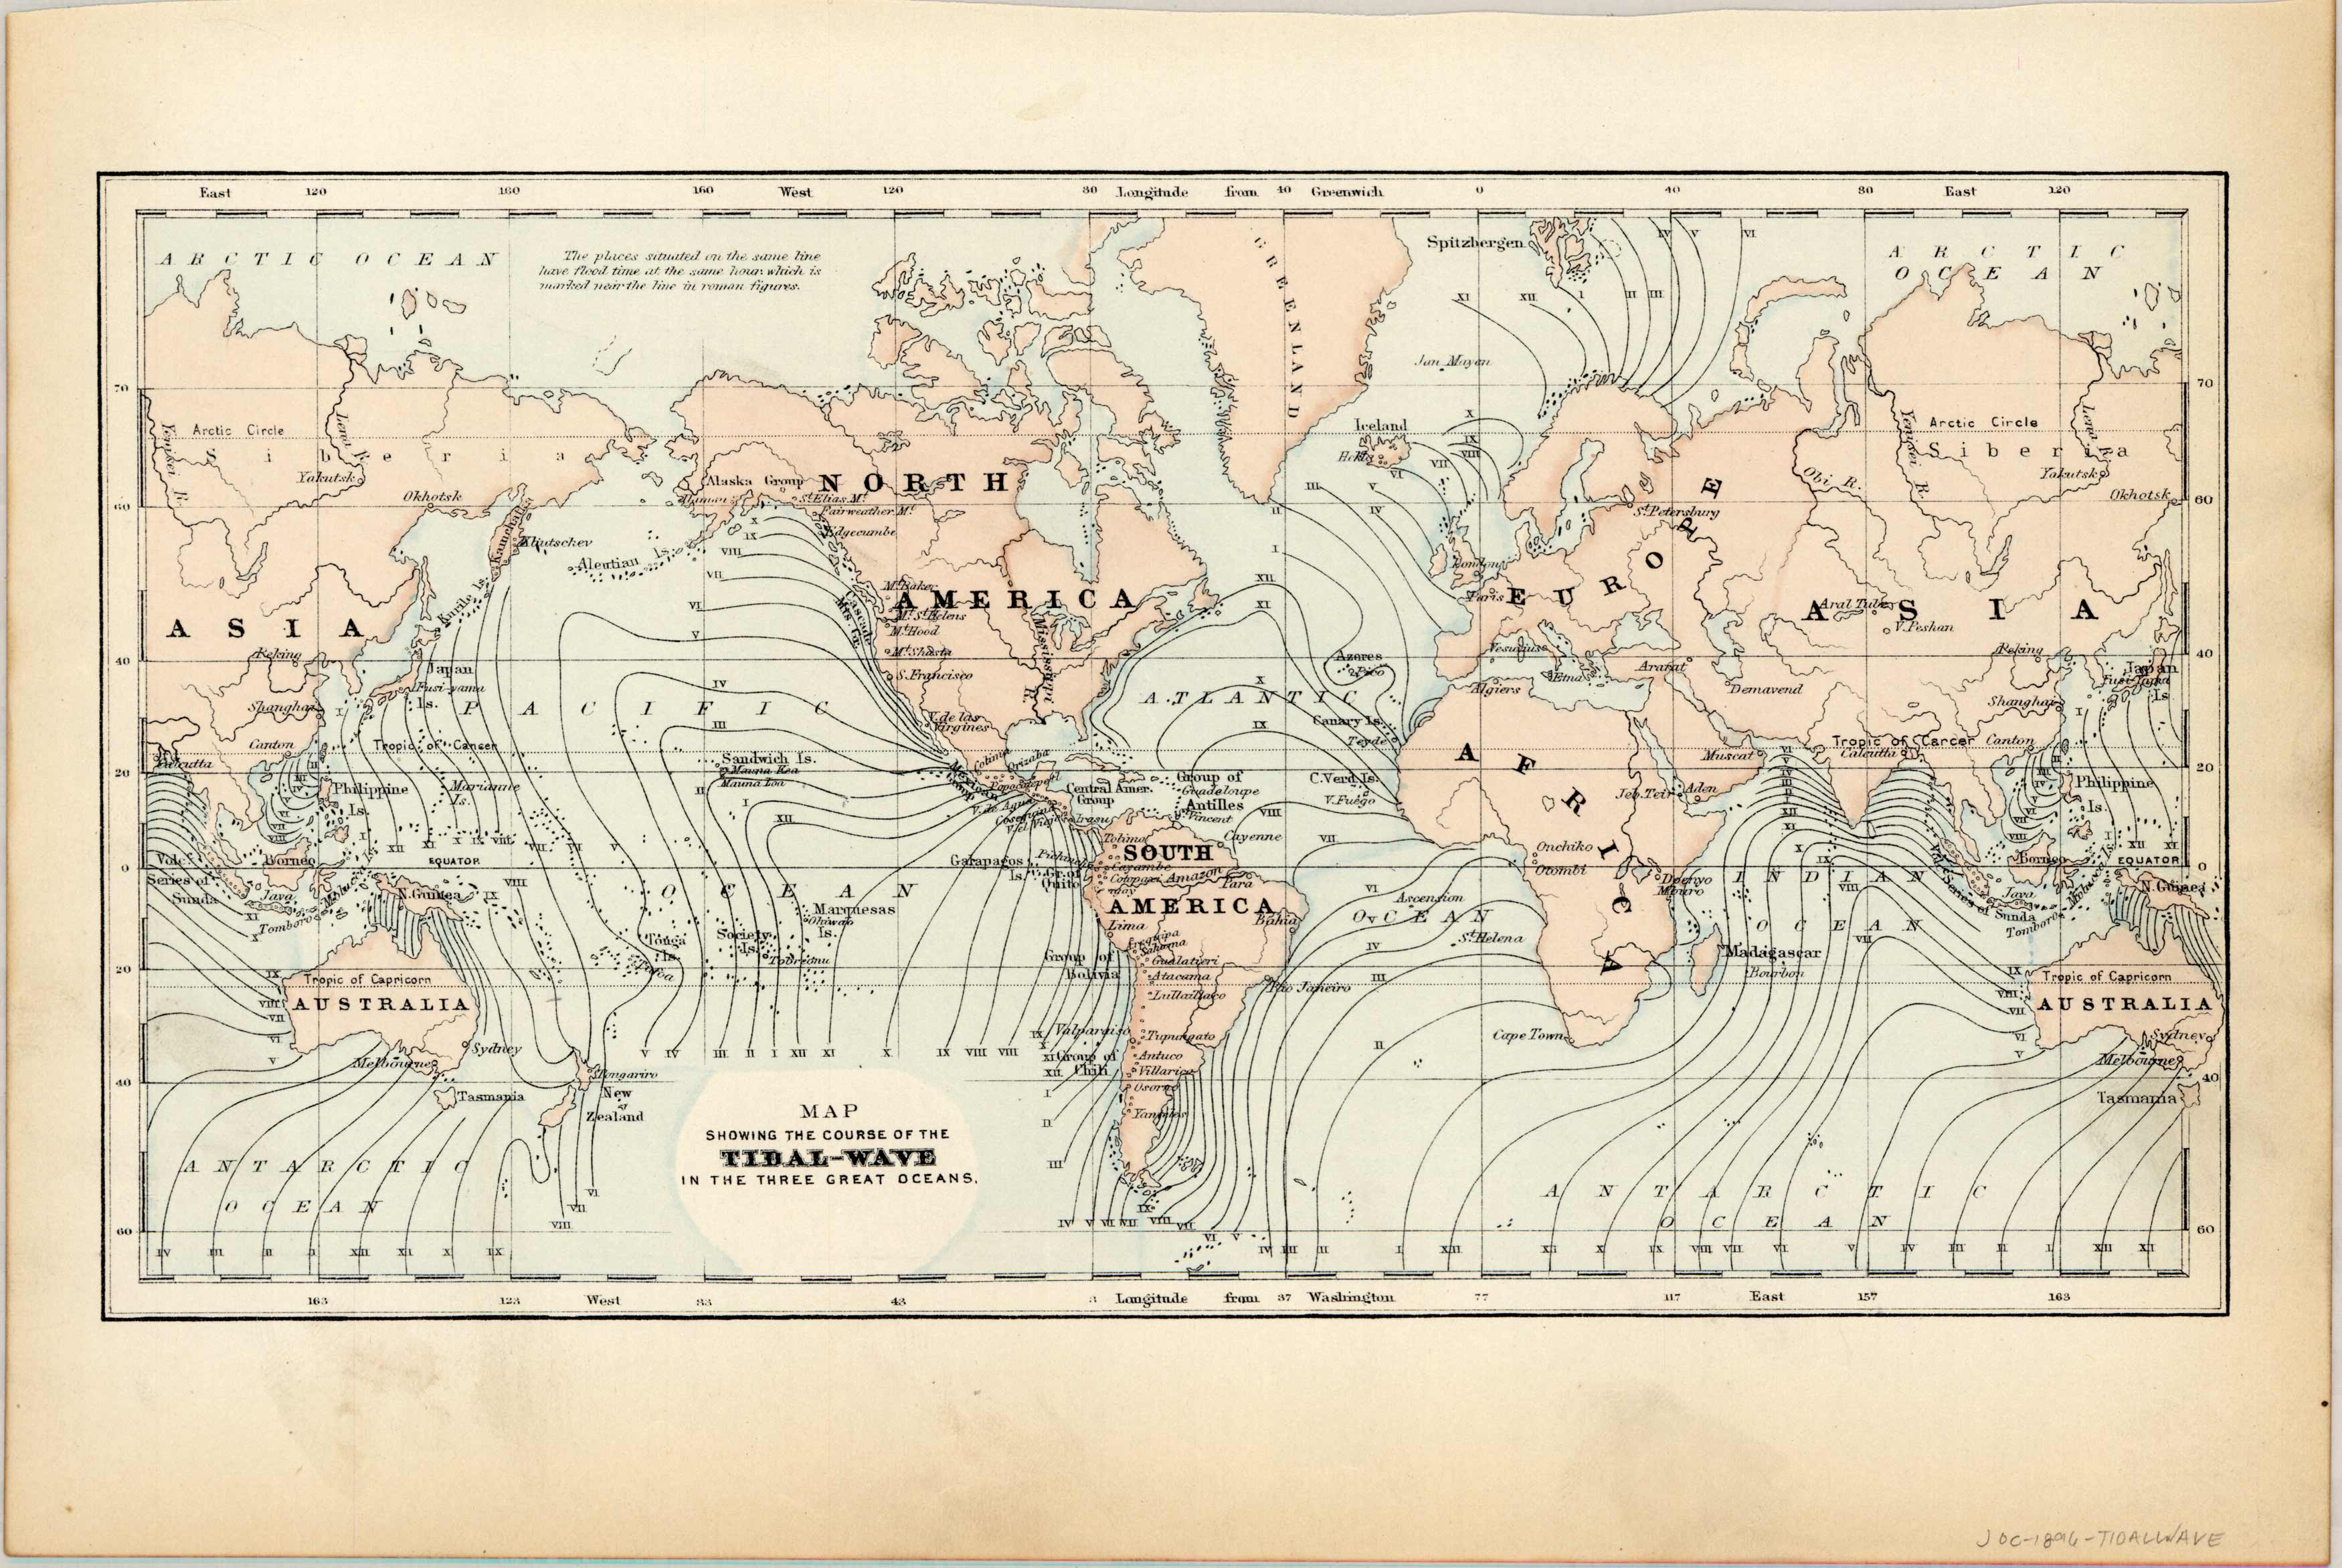 Map showing the Course of the Tidal-Wave in the Three Great Oceans